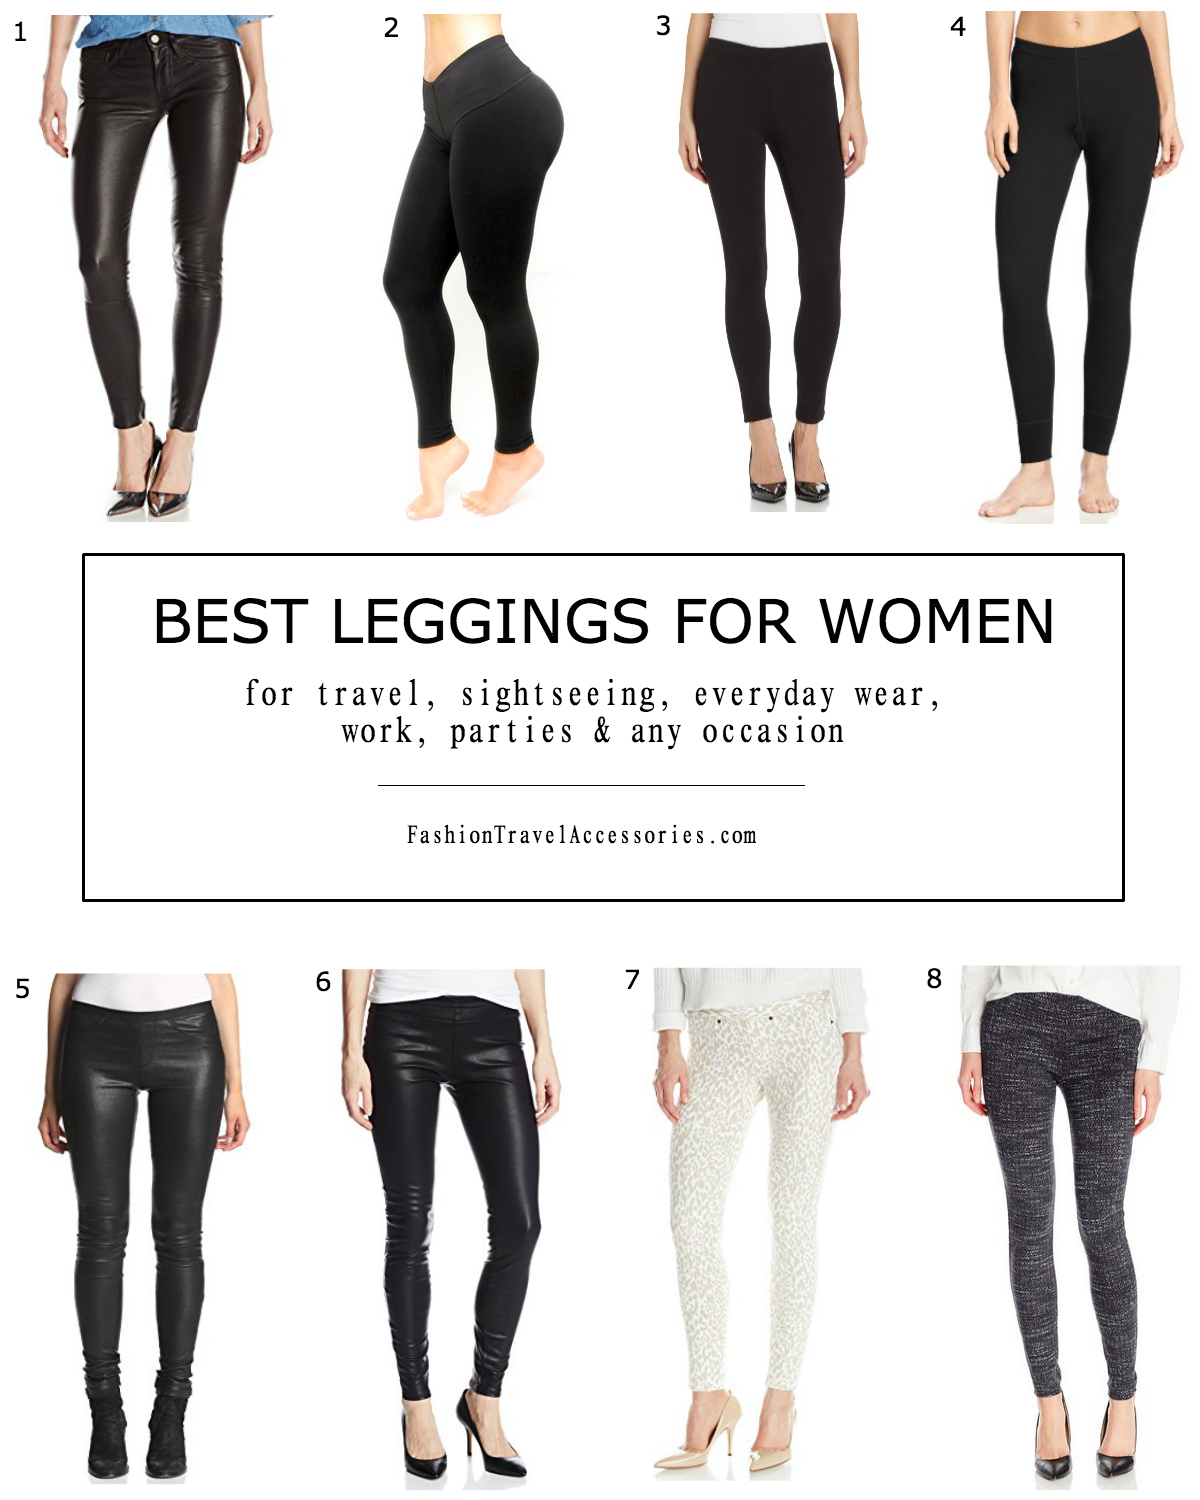 Best Leggings For Women For Travel, Everyday Wear & Any Occasion